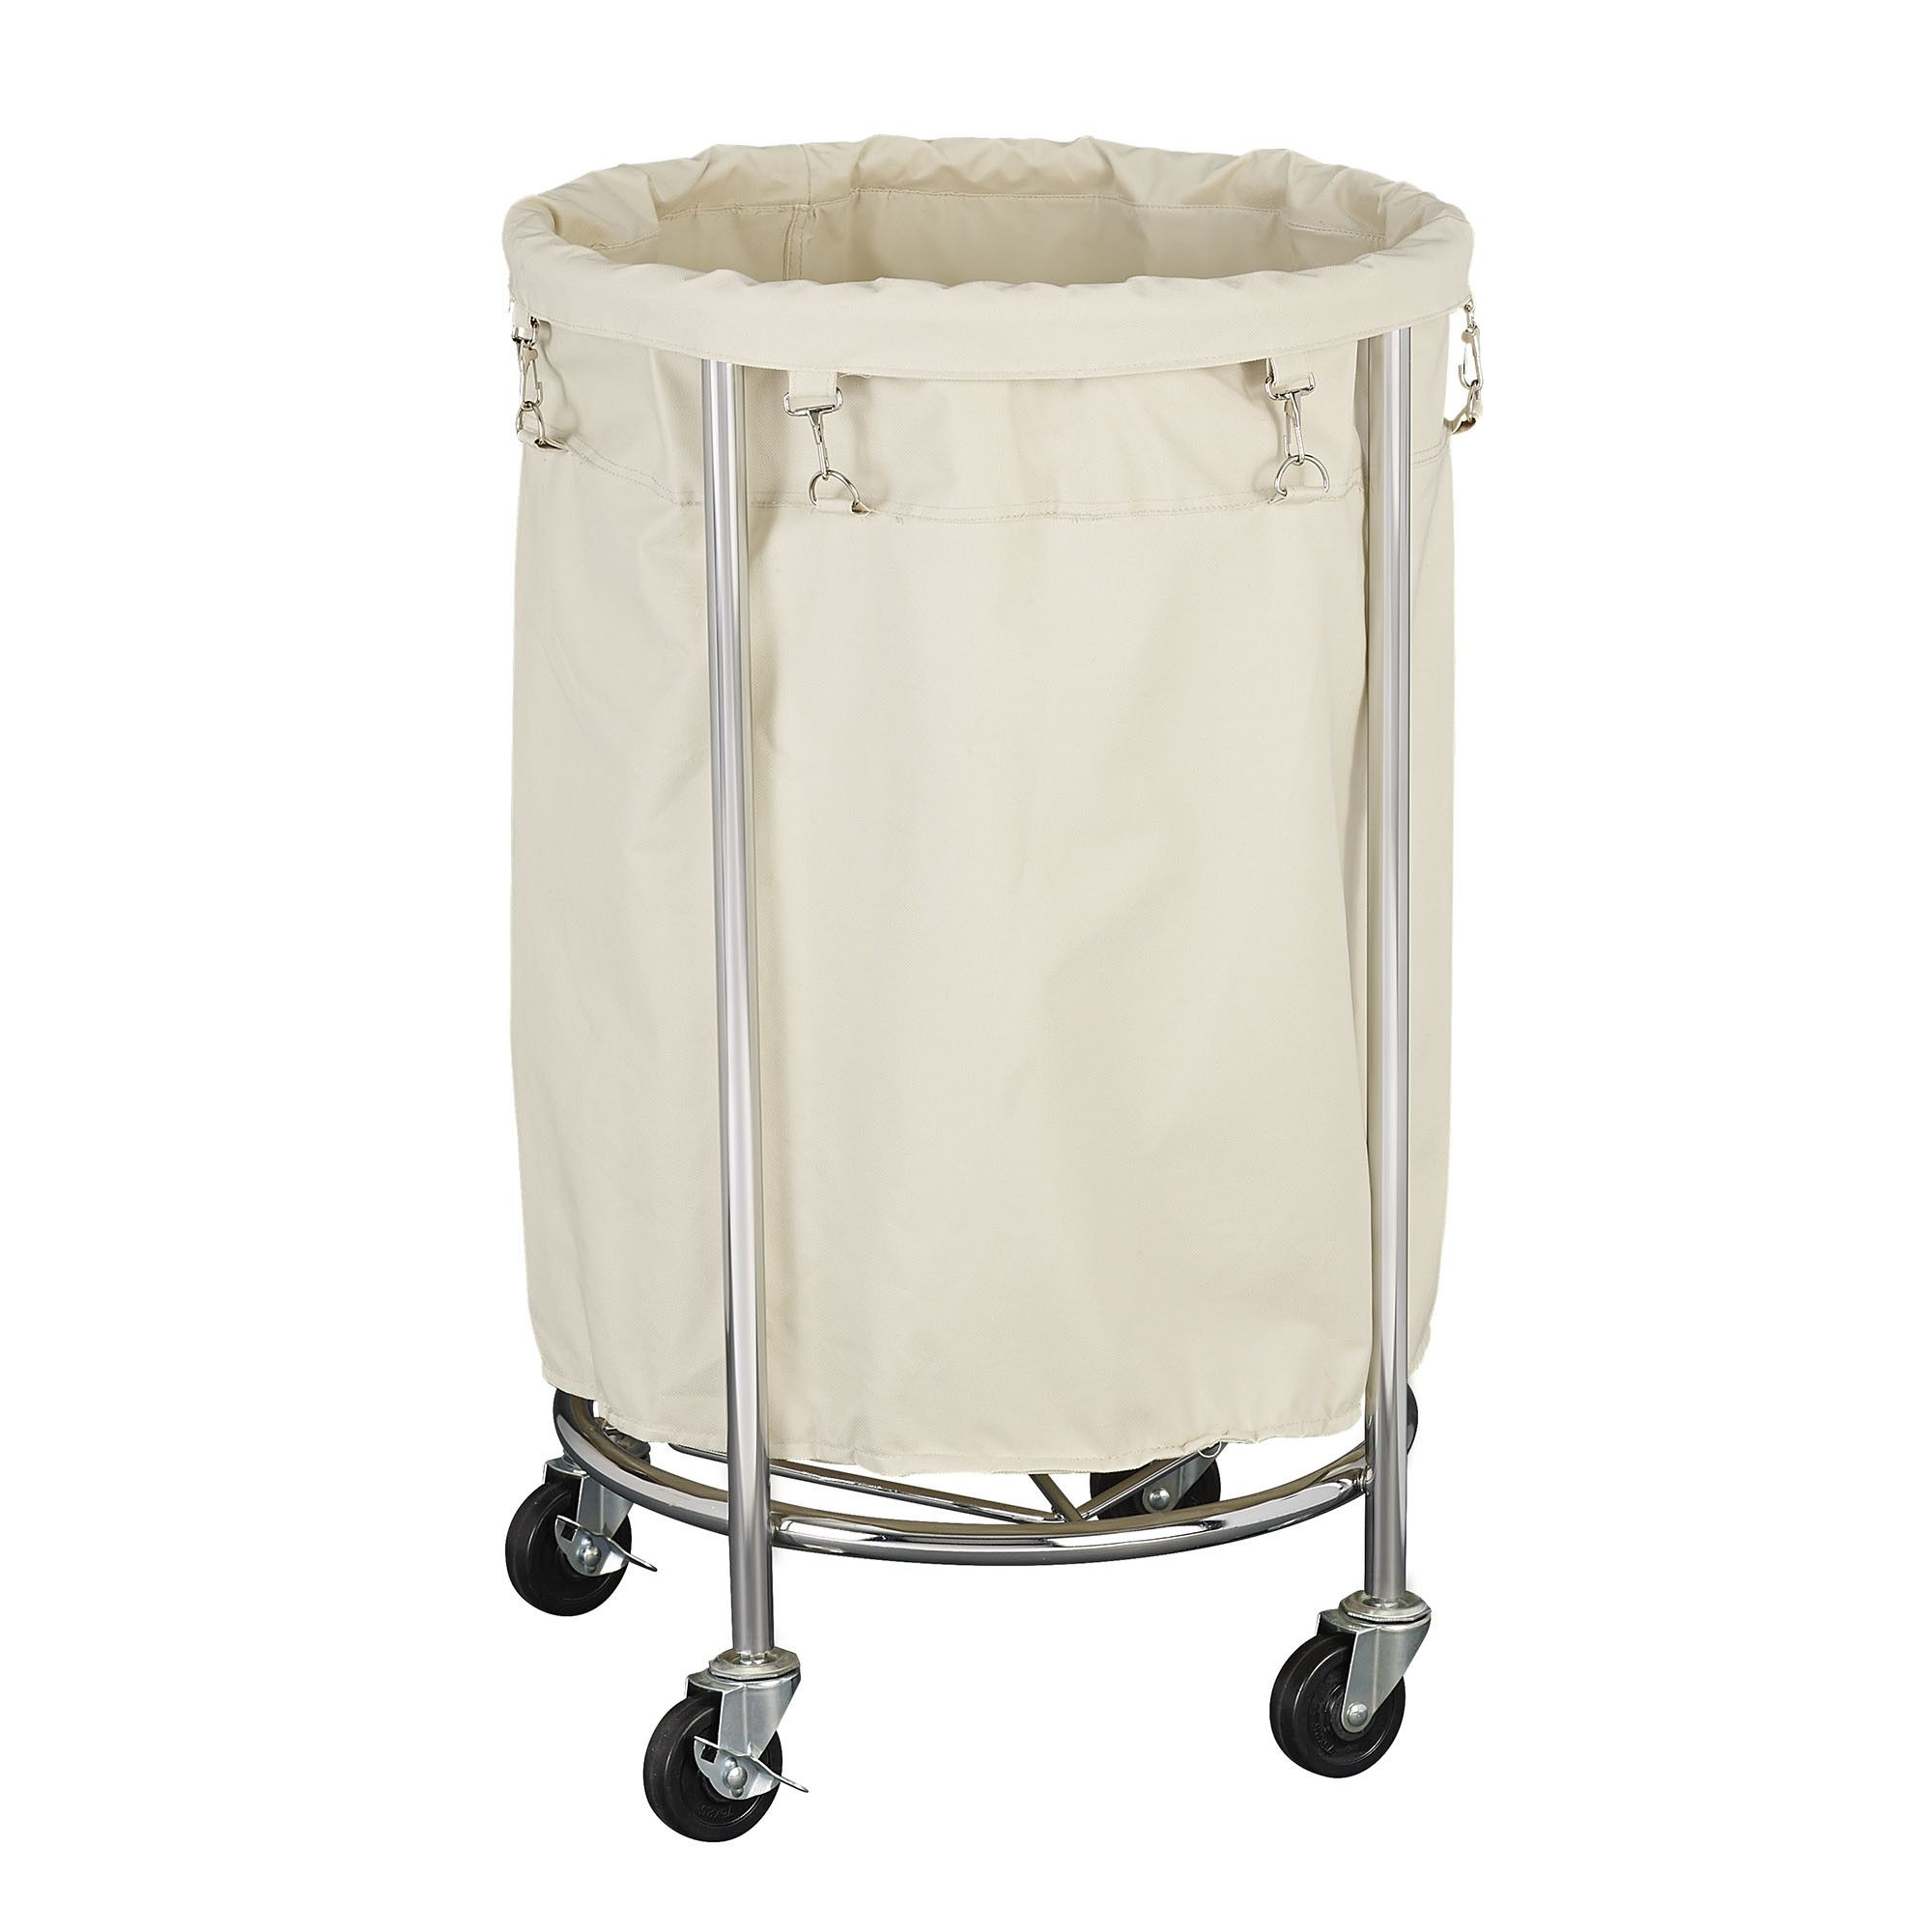 Household Essentials Commercial Round Laundry Hamper Laundry